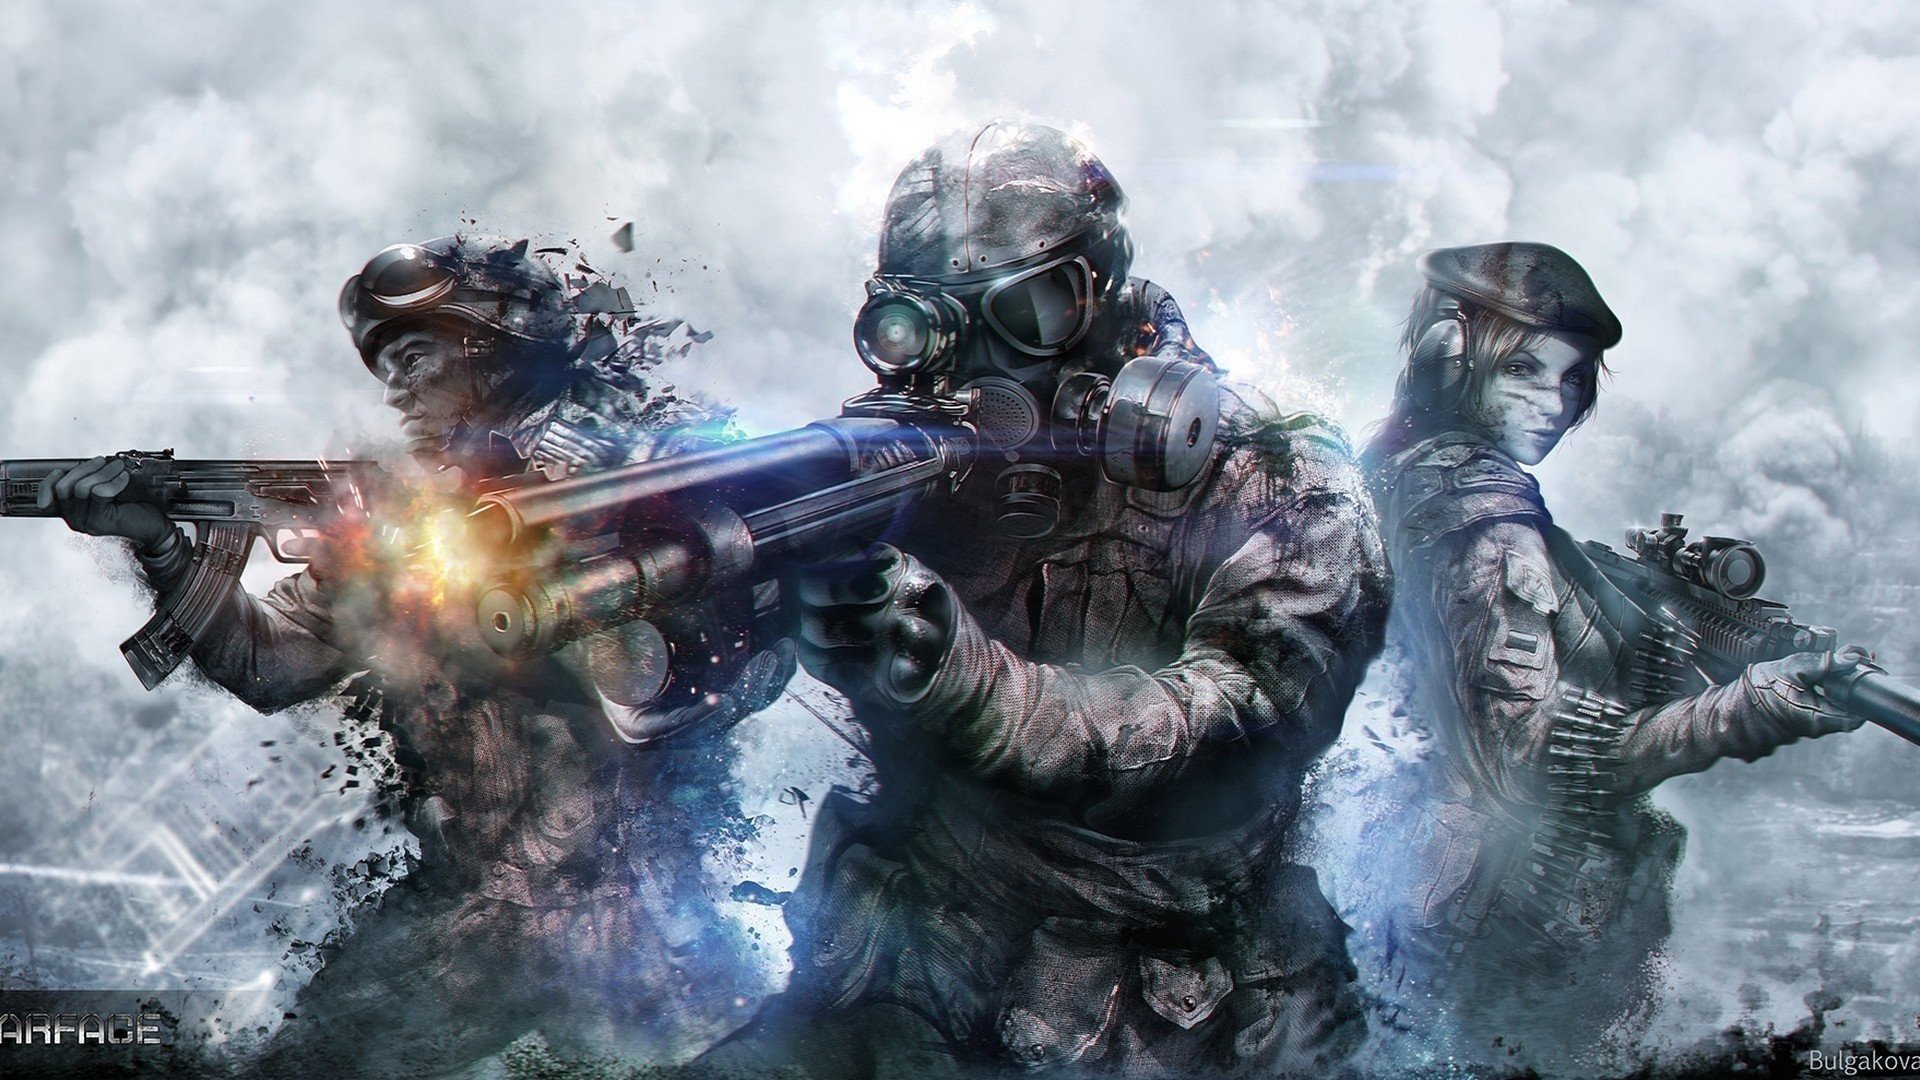 Download Us Army Wallpaper Hd 51: Warface HD Wallpapers / Desktop And Mobile Images & Photos